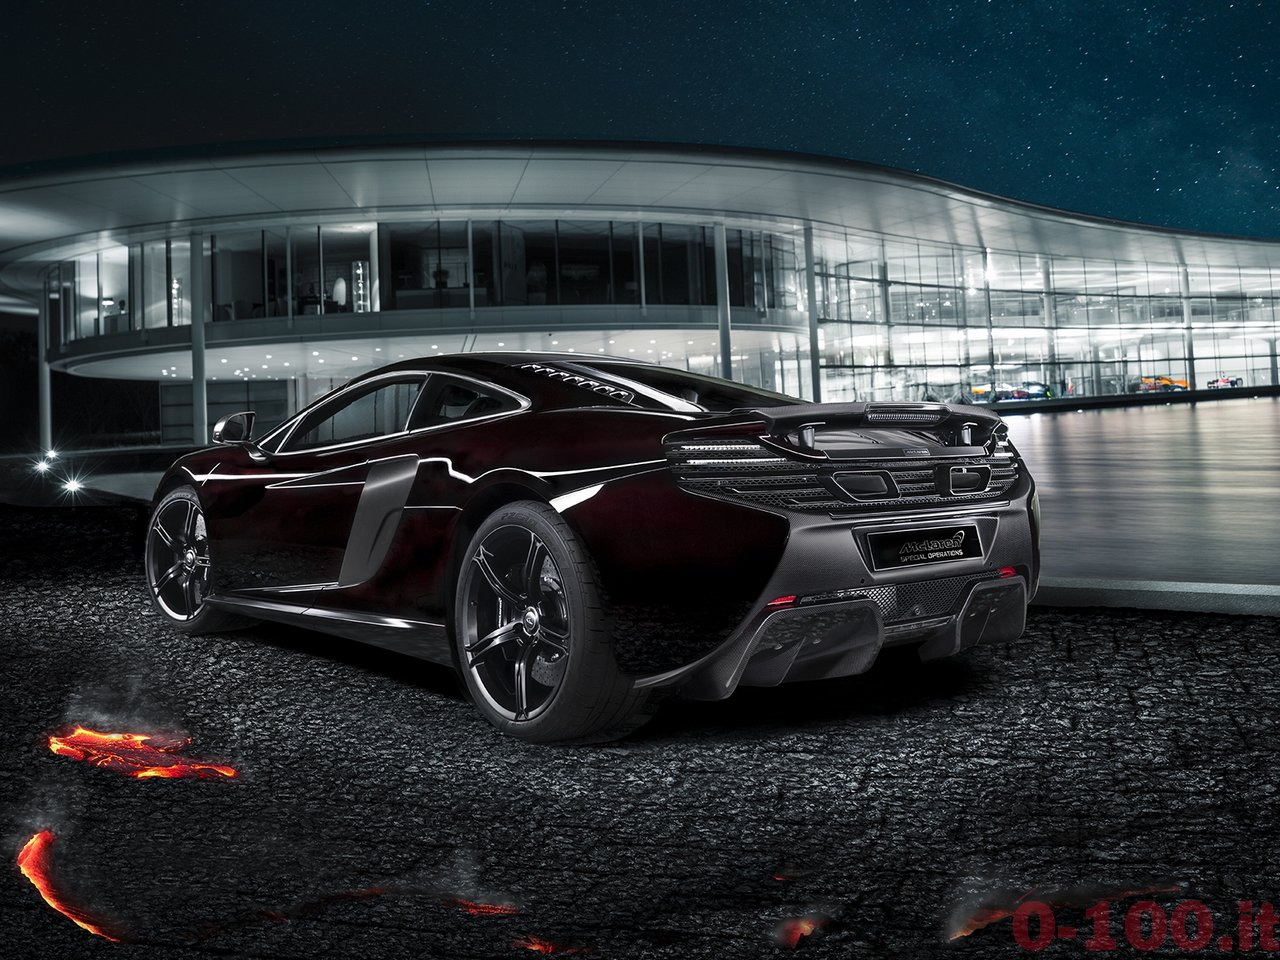 mclaren-special-operations-mclaren-650s-coupe-concept_0-100_2